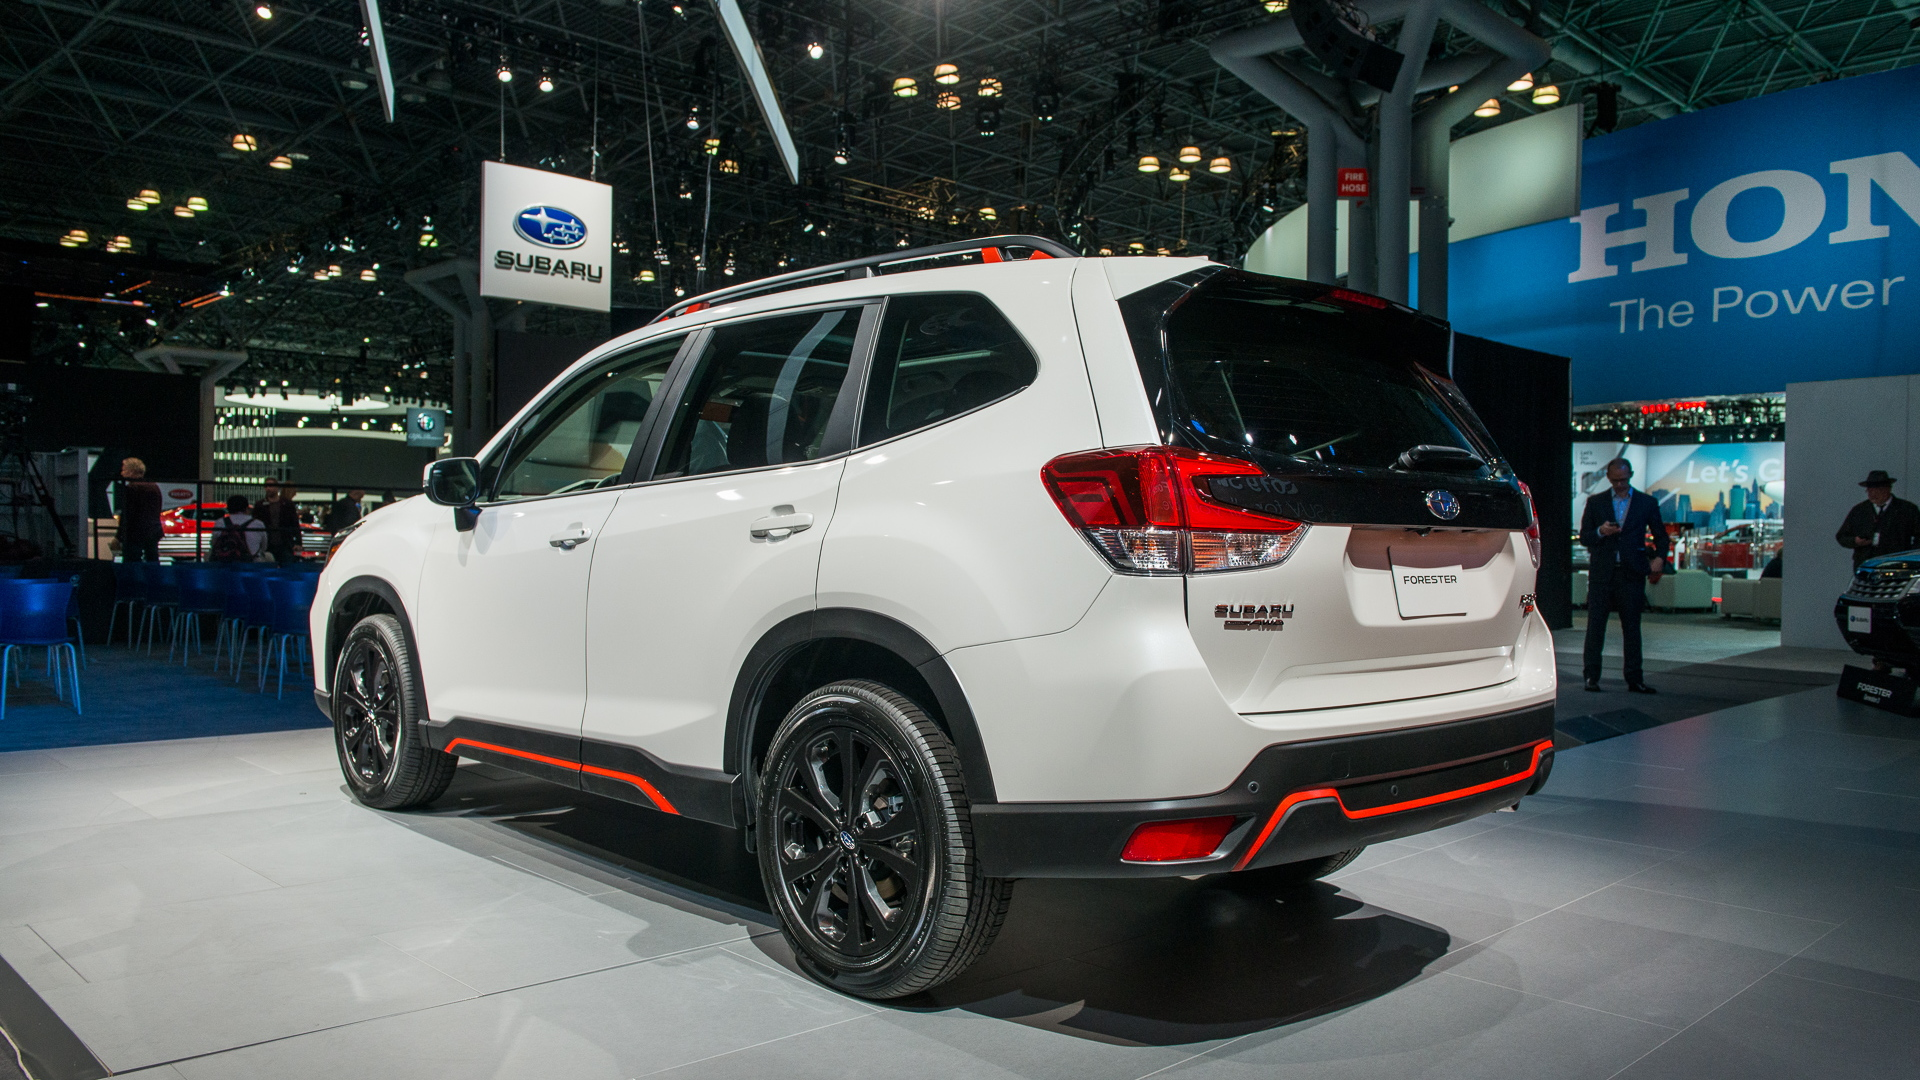 2019 Subaru Forester Grows Roomier Aims To Curb Distracted Driving